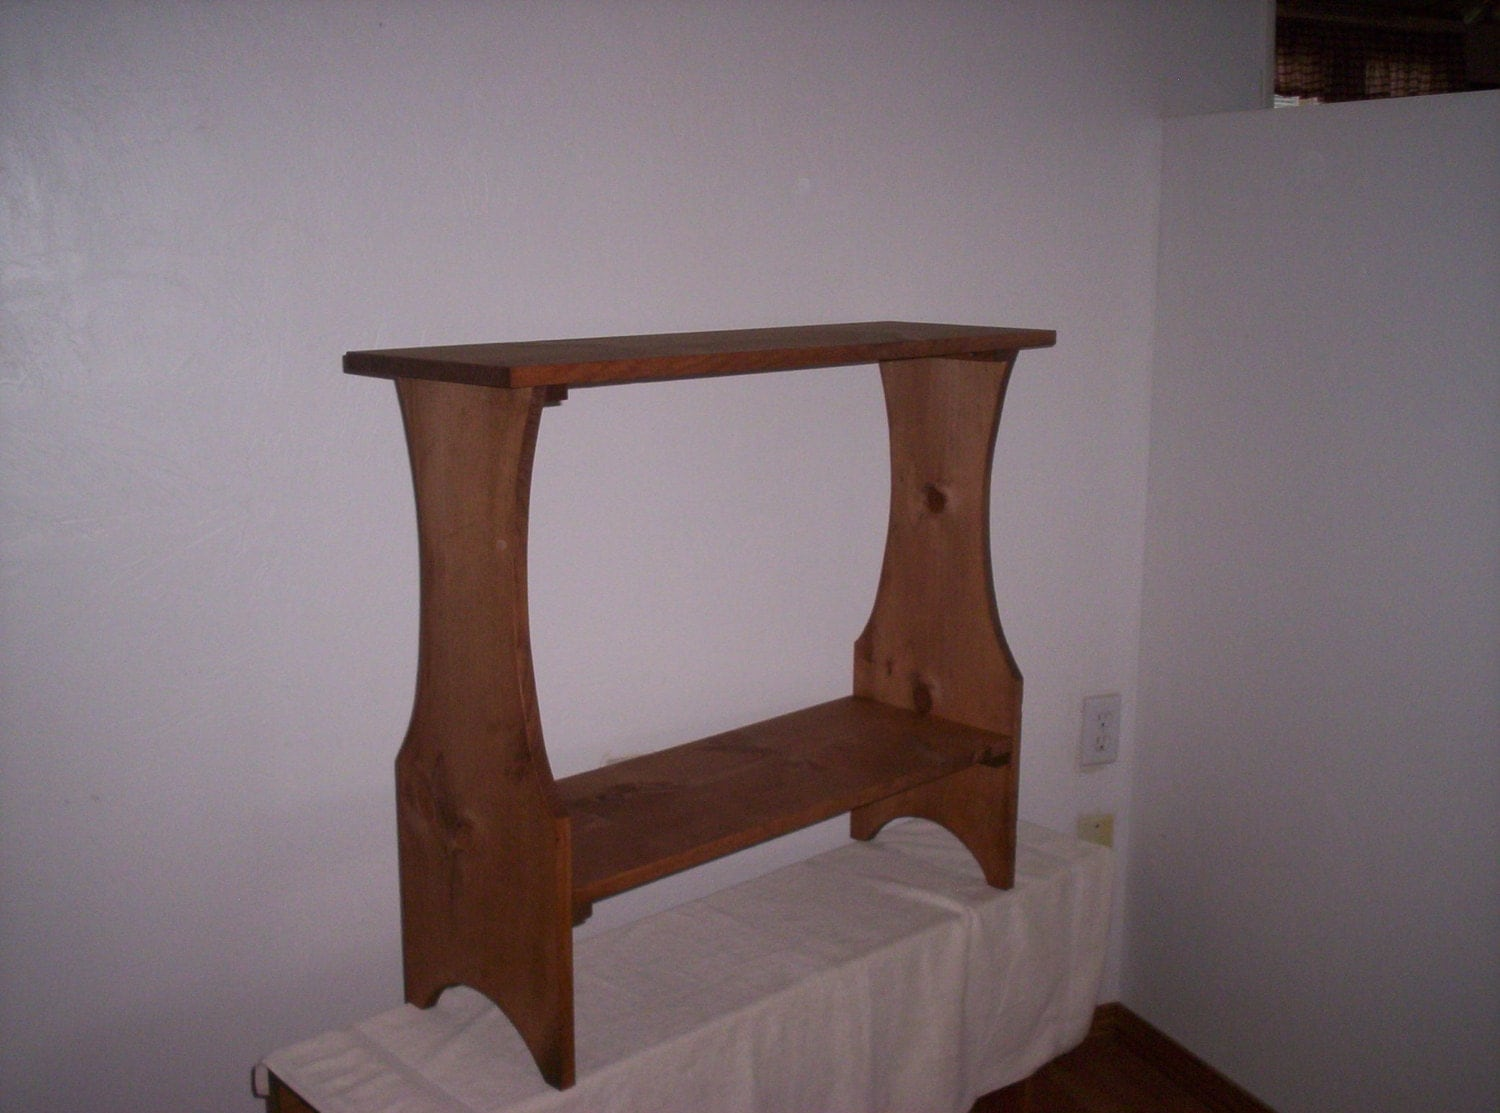 Sofa Table Behind The Sofa Table